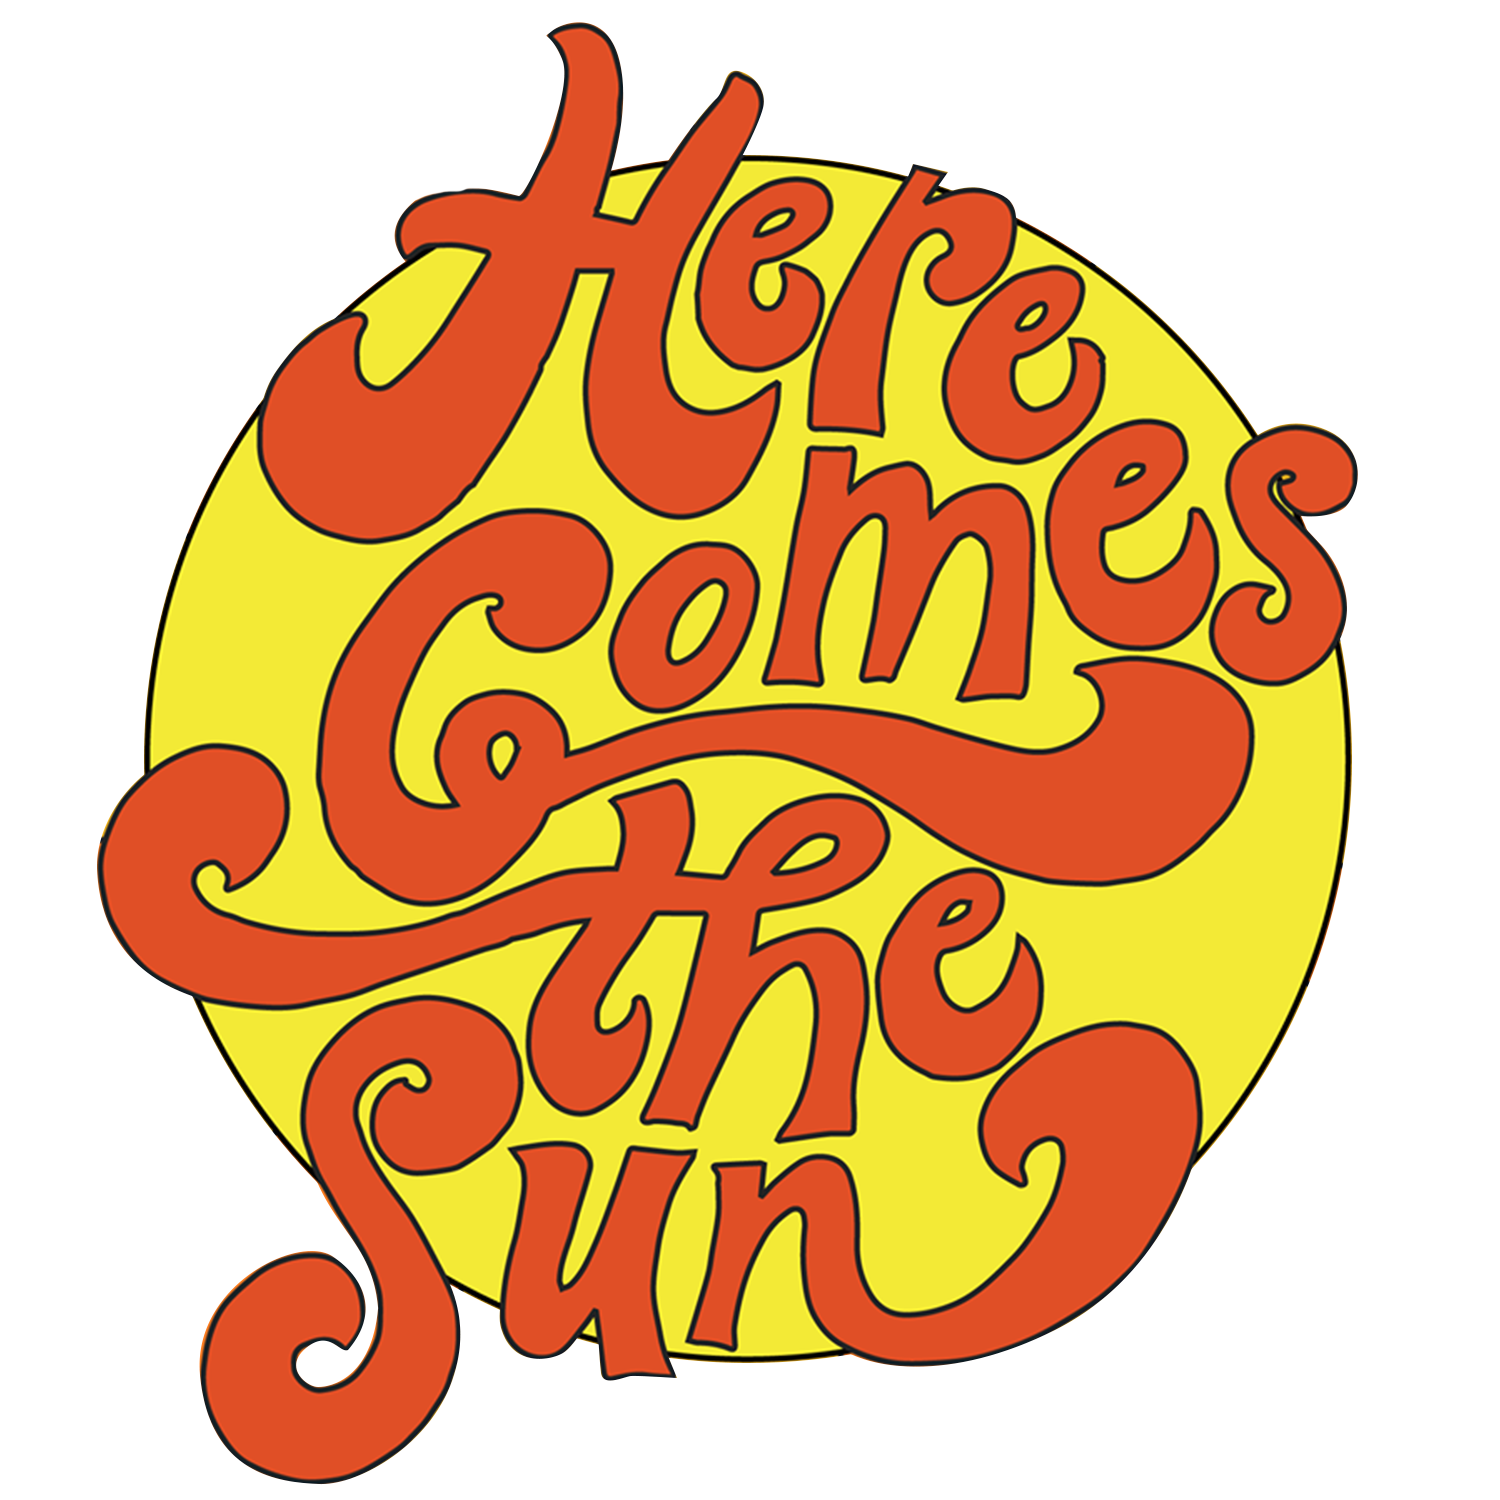 Free clipart here comes the sun jpg free Home - First Night Oneonta jpg free